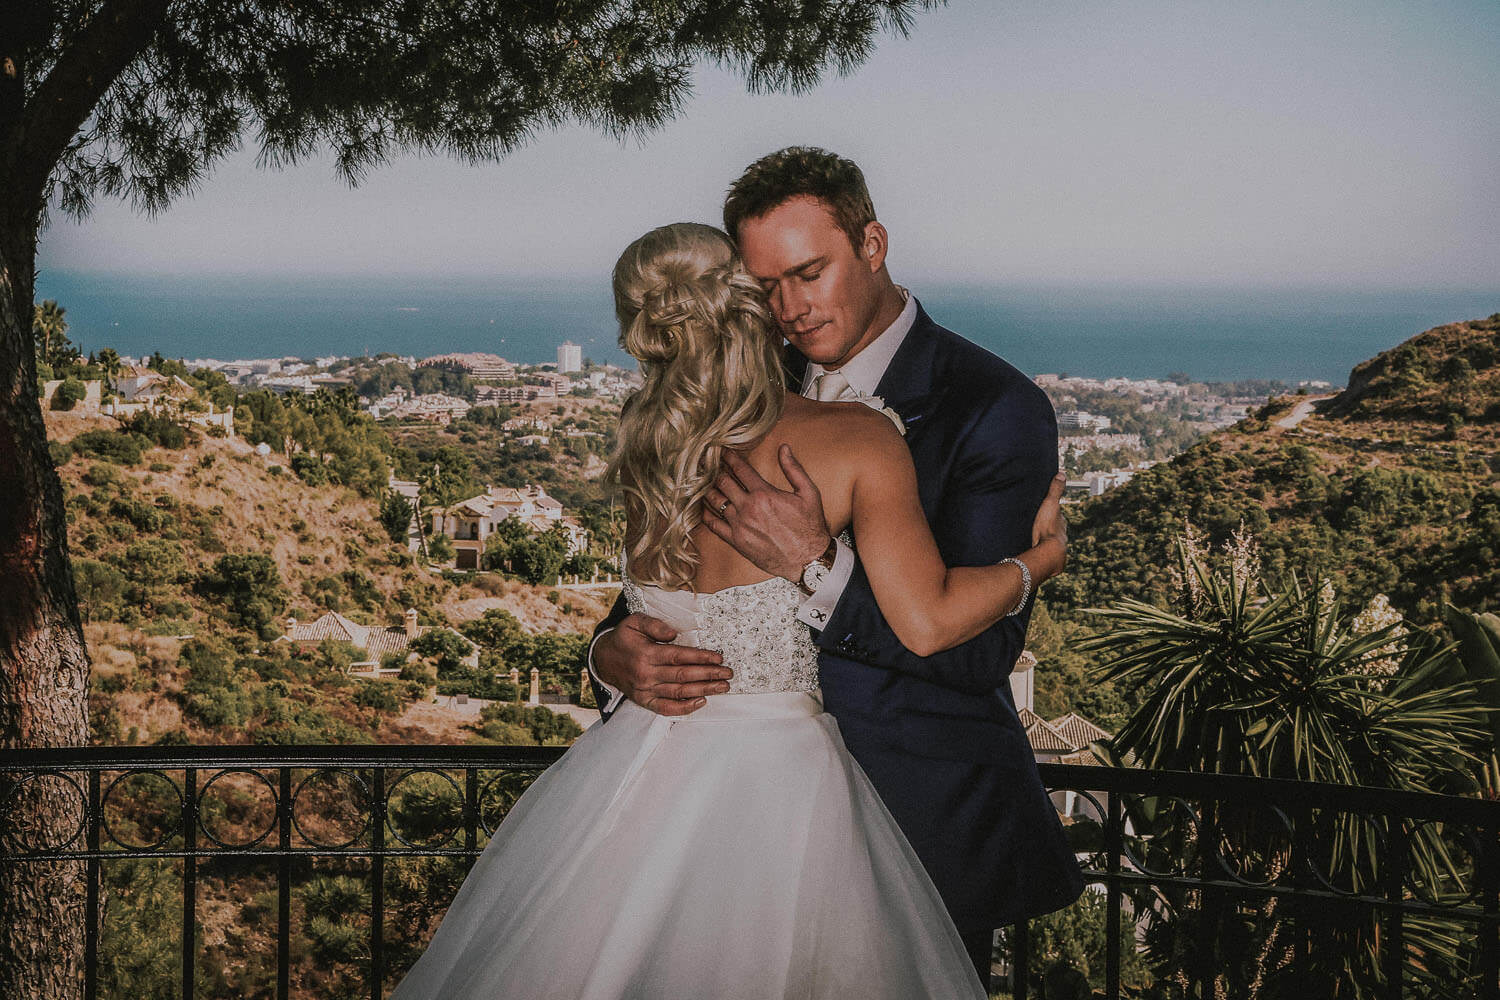 50 Most memorable celebrity weddings of the decade. Russell Watson Hello magazine wedding photography